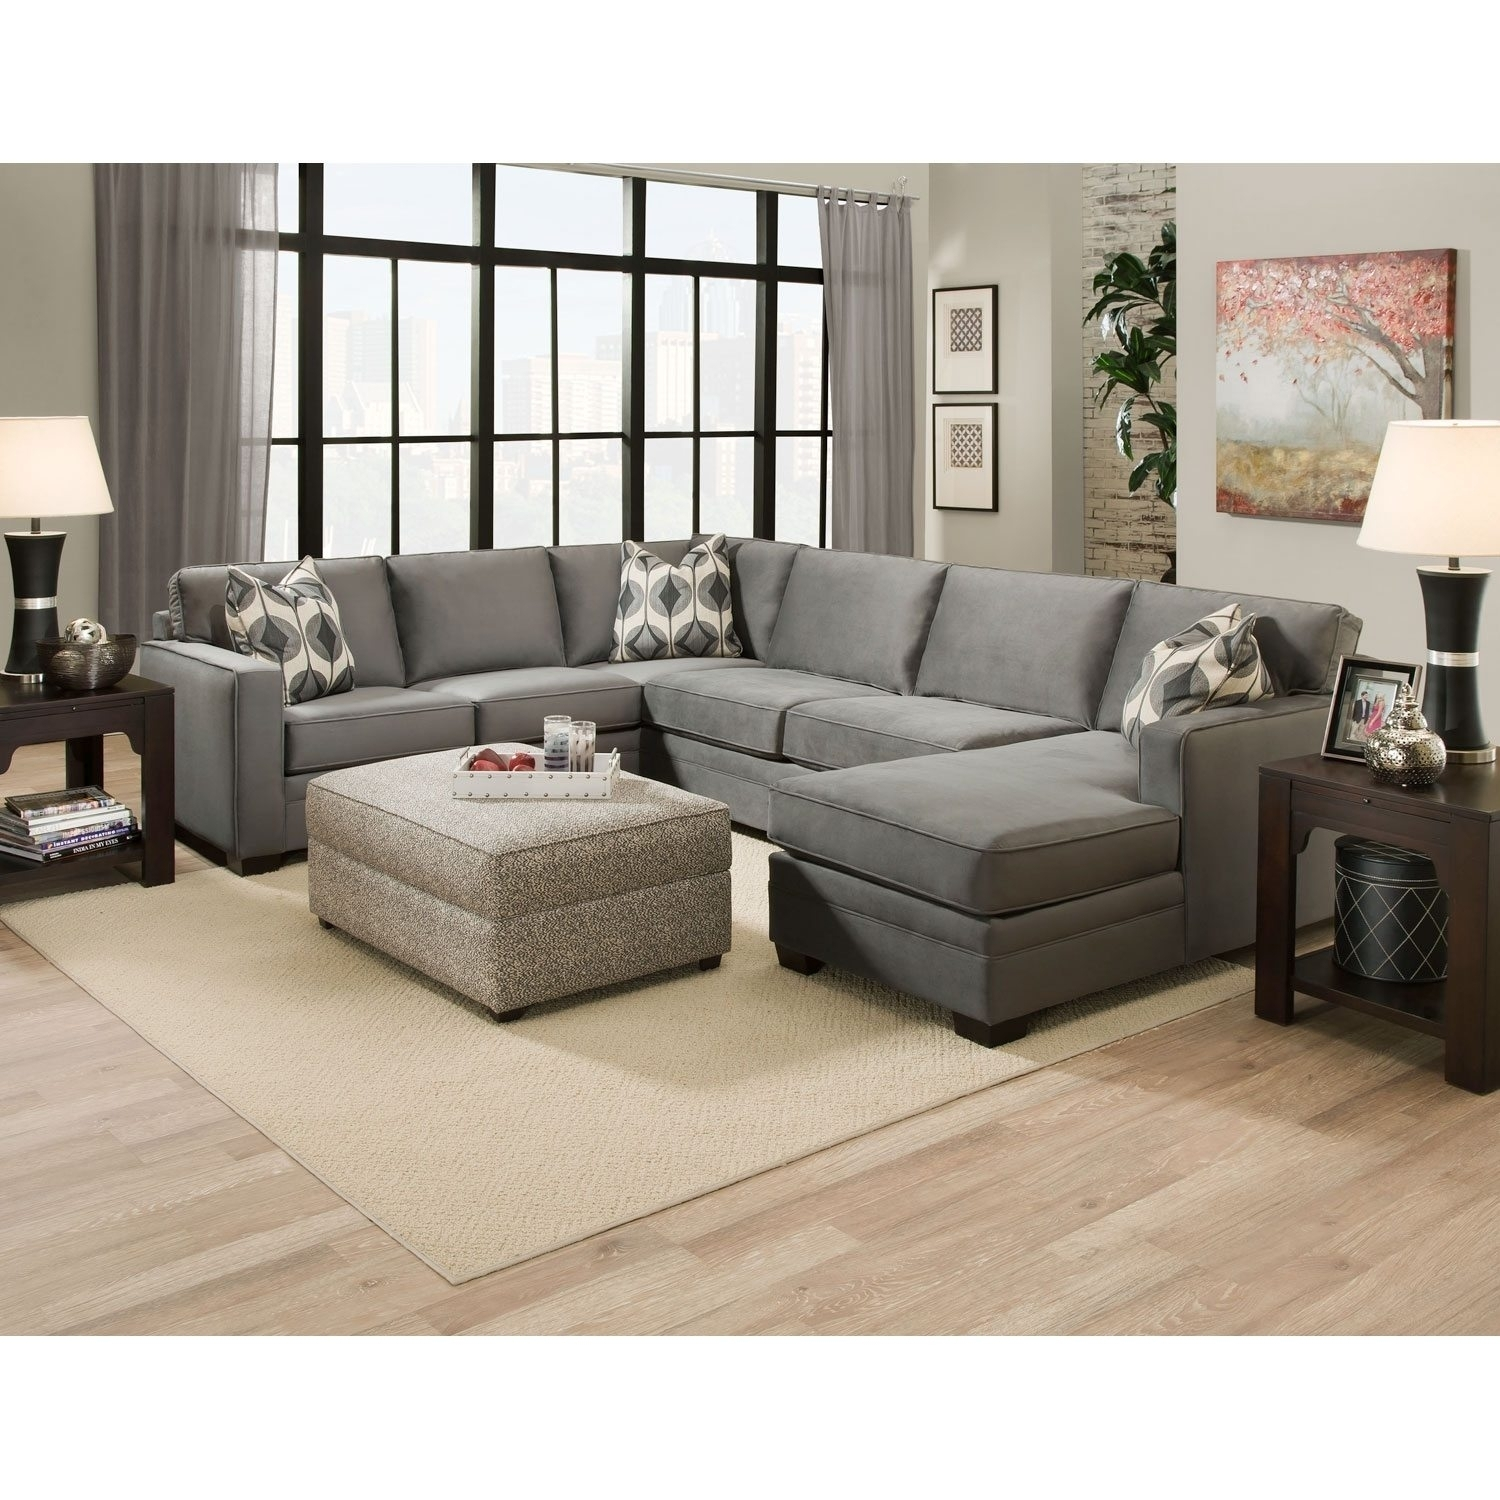 Lane Sectionals Sofas Sam's Club • Sectional Sofa in Sectional Sofas at Sam's Club (Image 7 of 15)